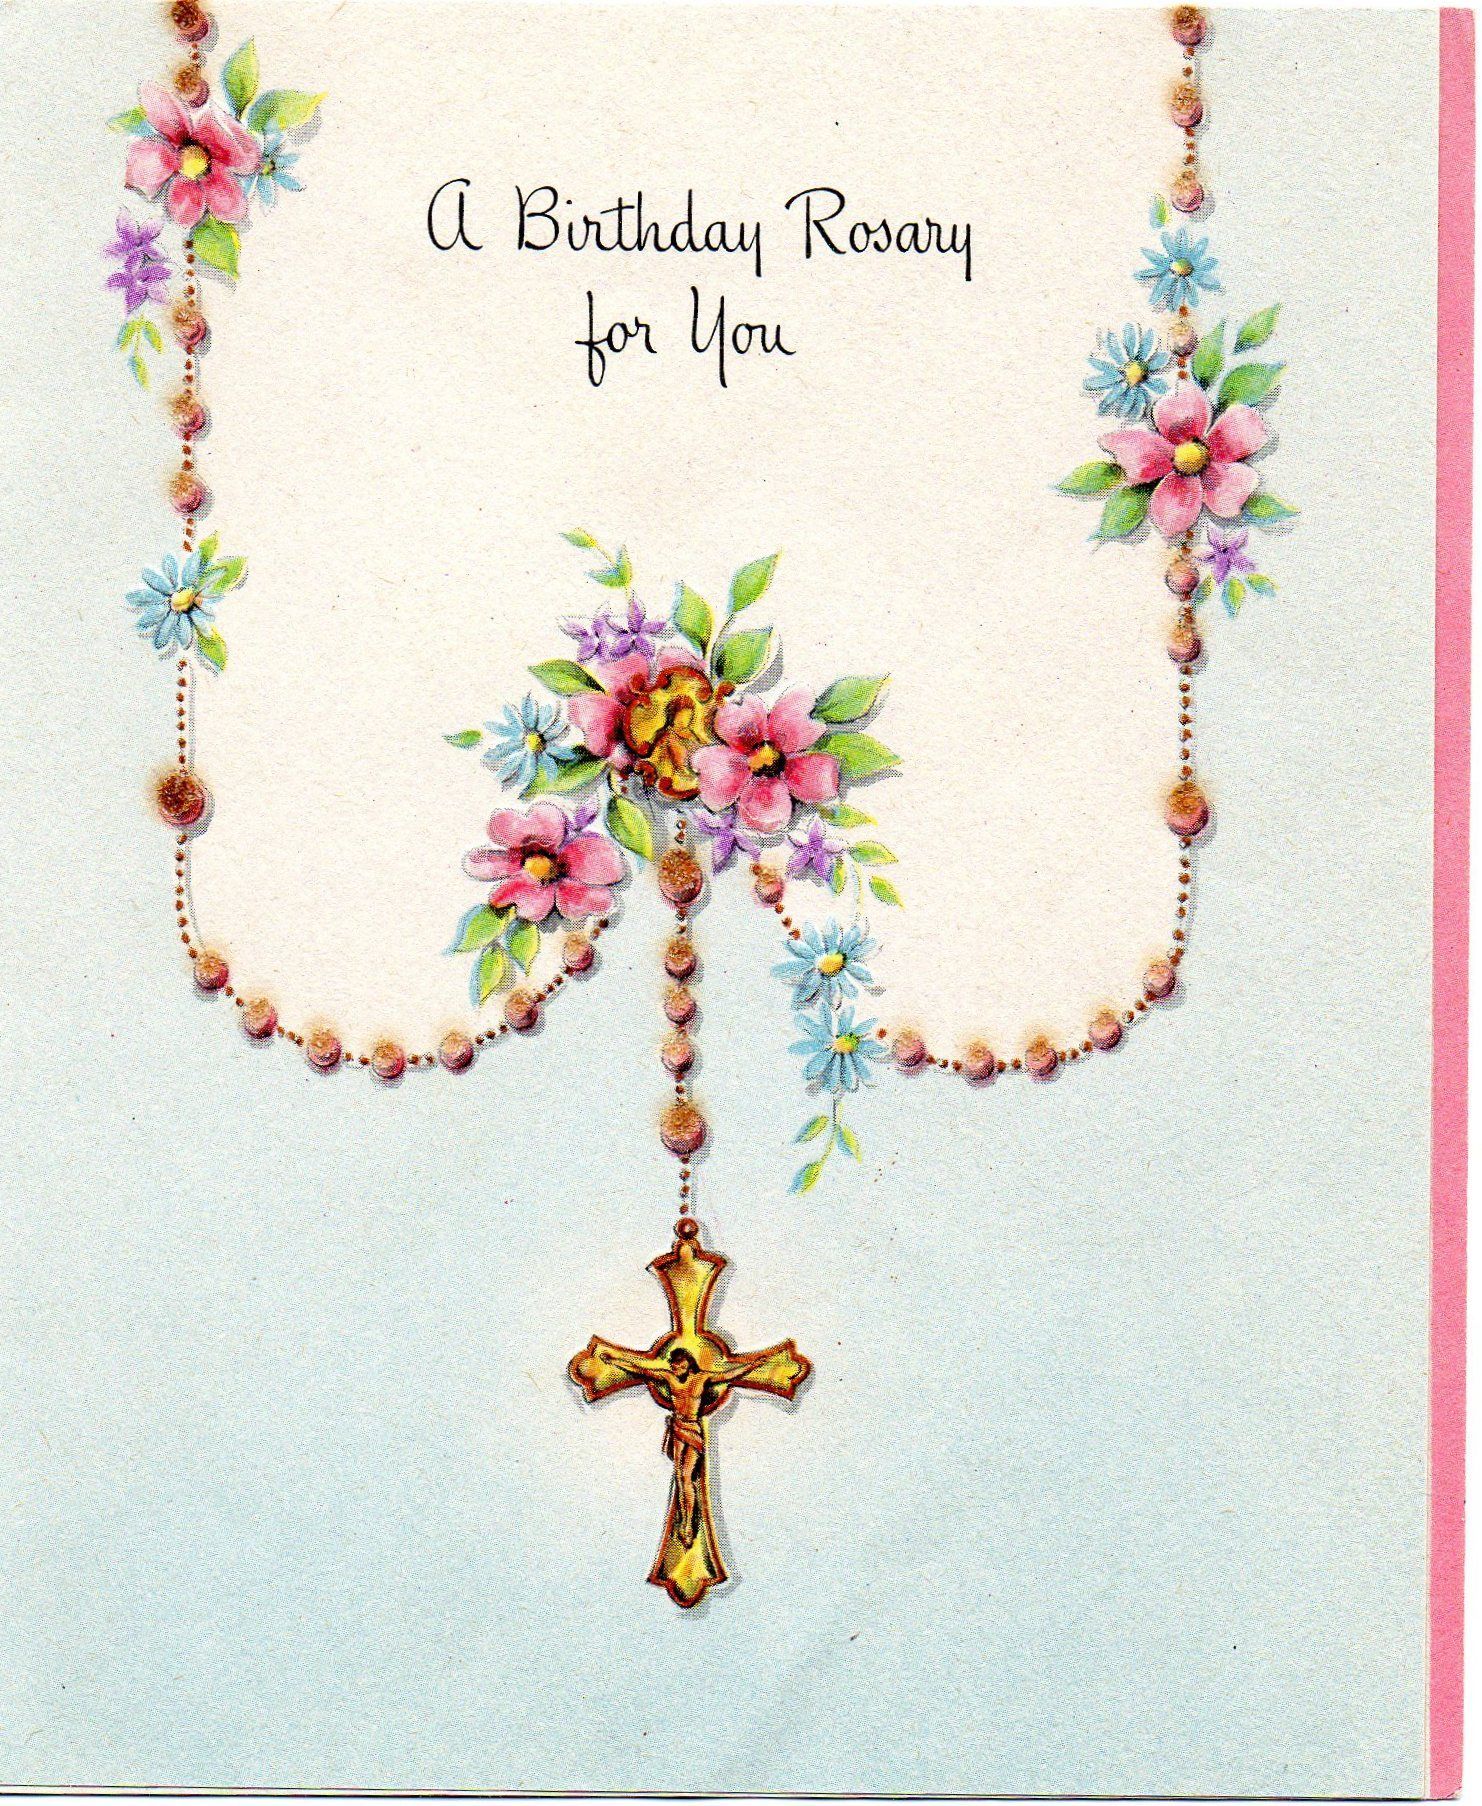 a birthday rosary for you may god watch over you each day and bless you lovingly this is the prayer i m saying on your birthday rosary  [ 1482 x 1806 Pixel ]